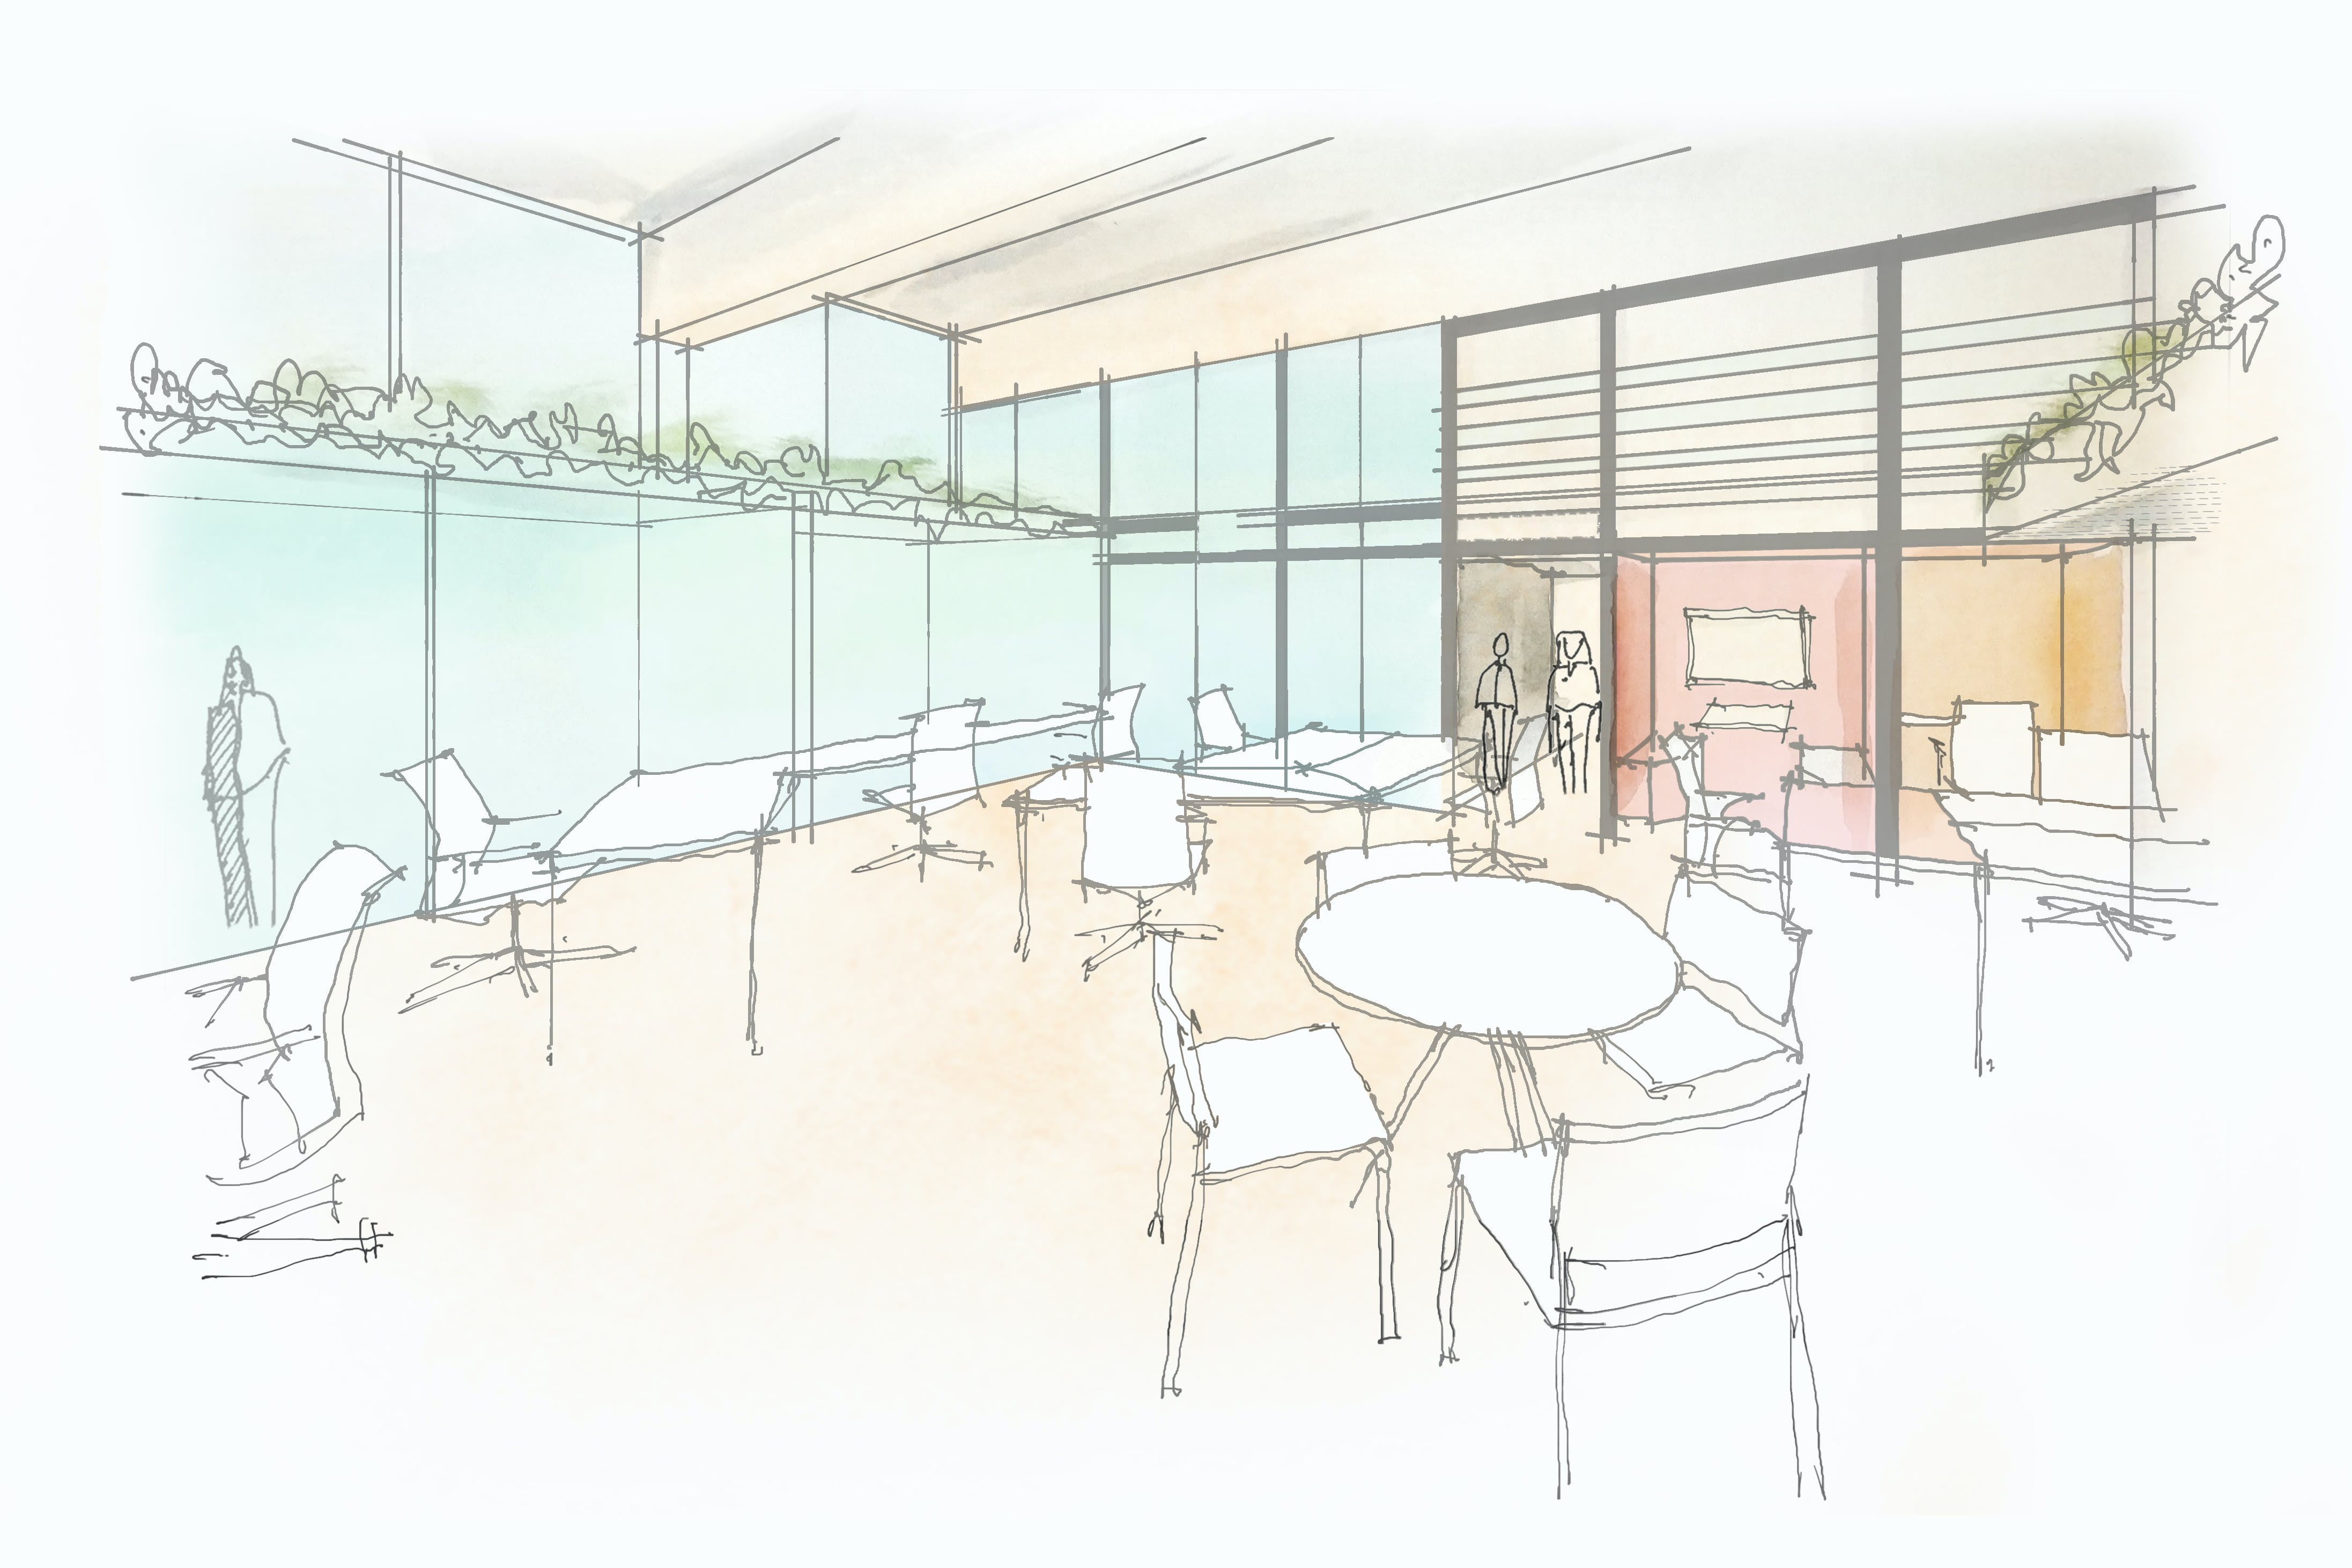 Artist's render of how the cowork space could look